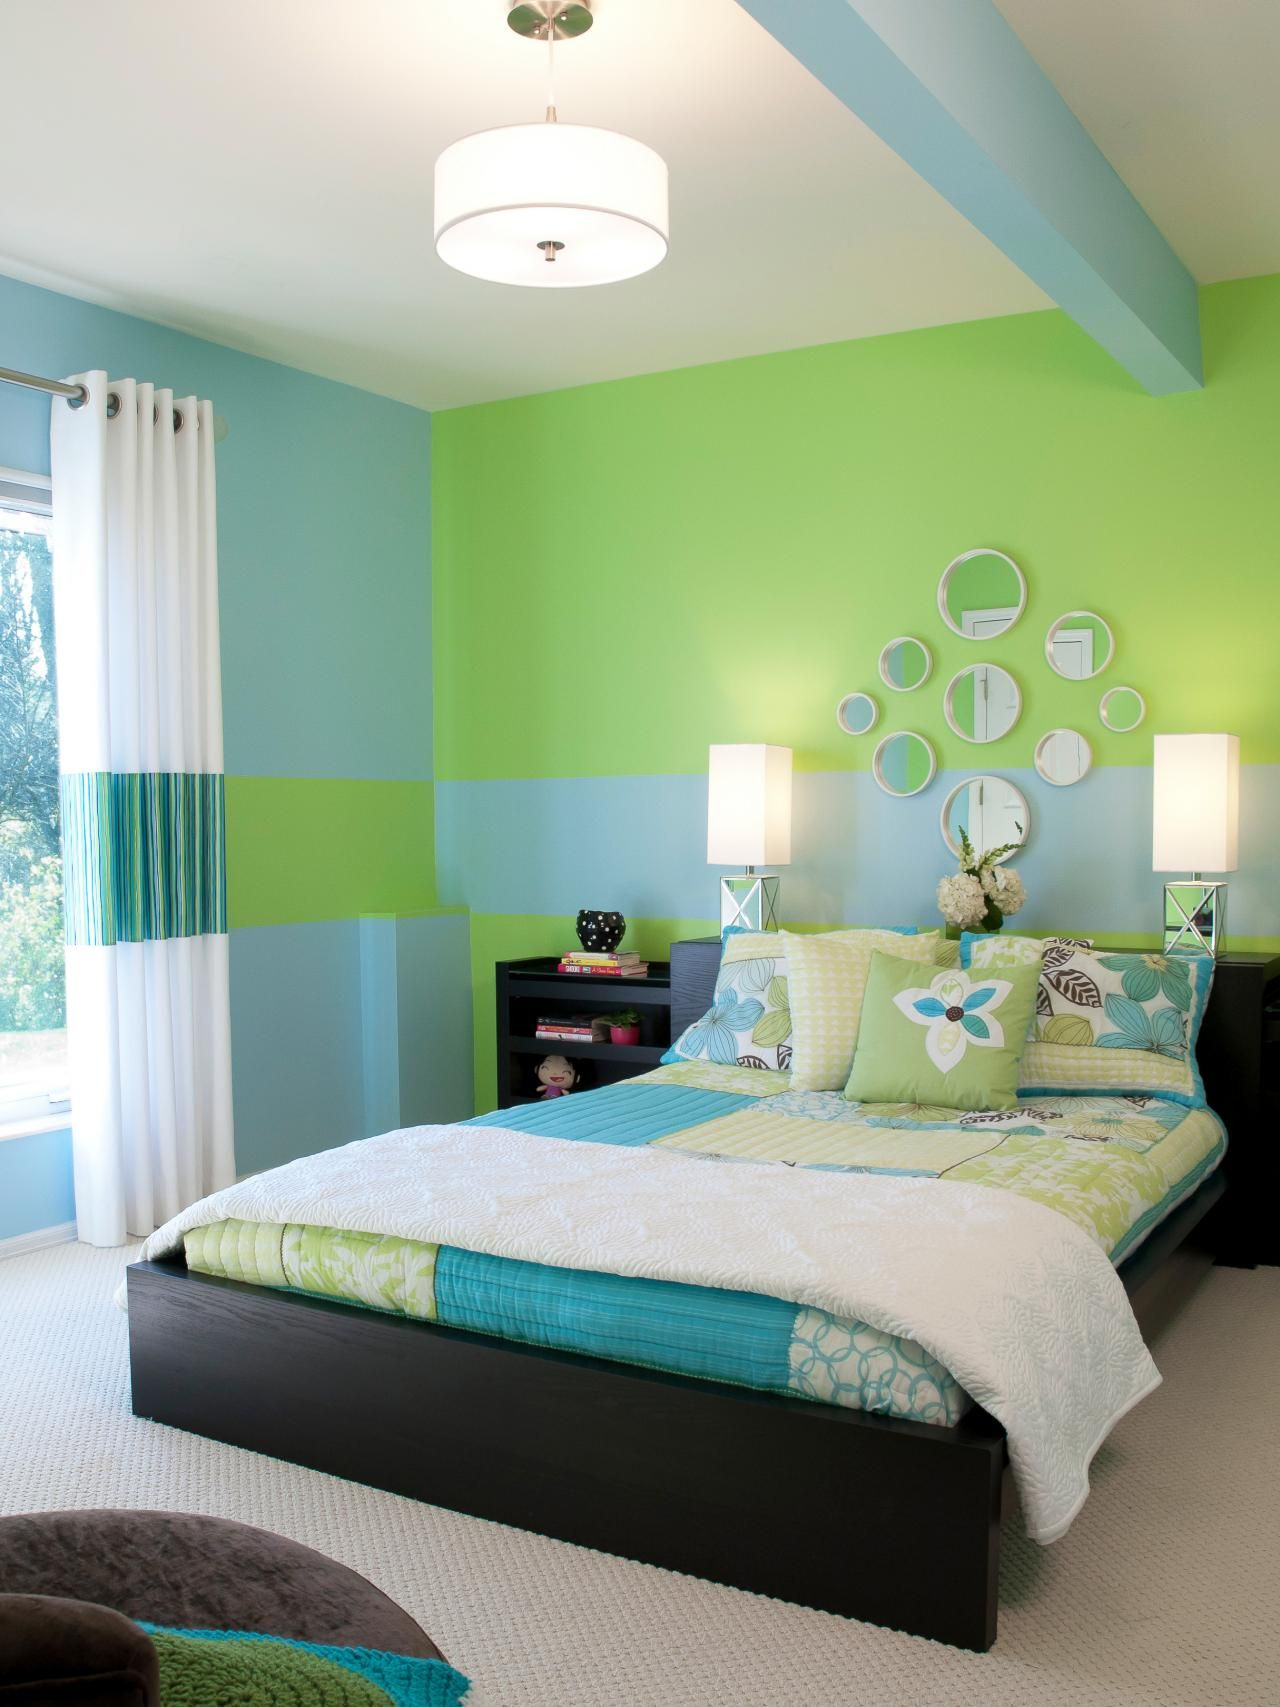 Colores De Pinturas Para Dormitorios Wallpaper, Murals And More | Kids Room Ideas & Decor